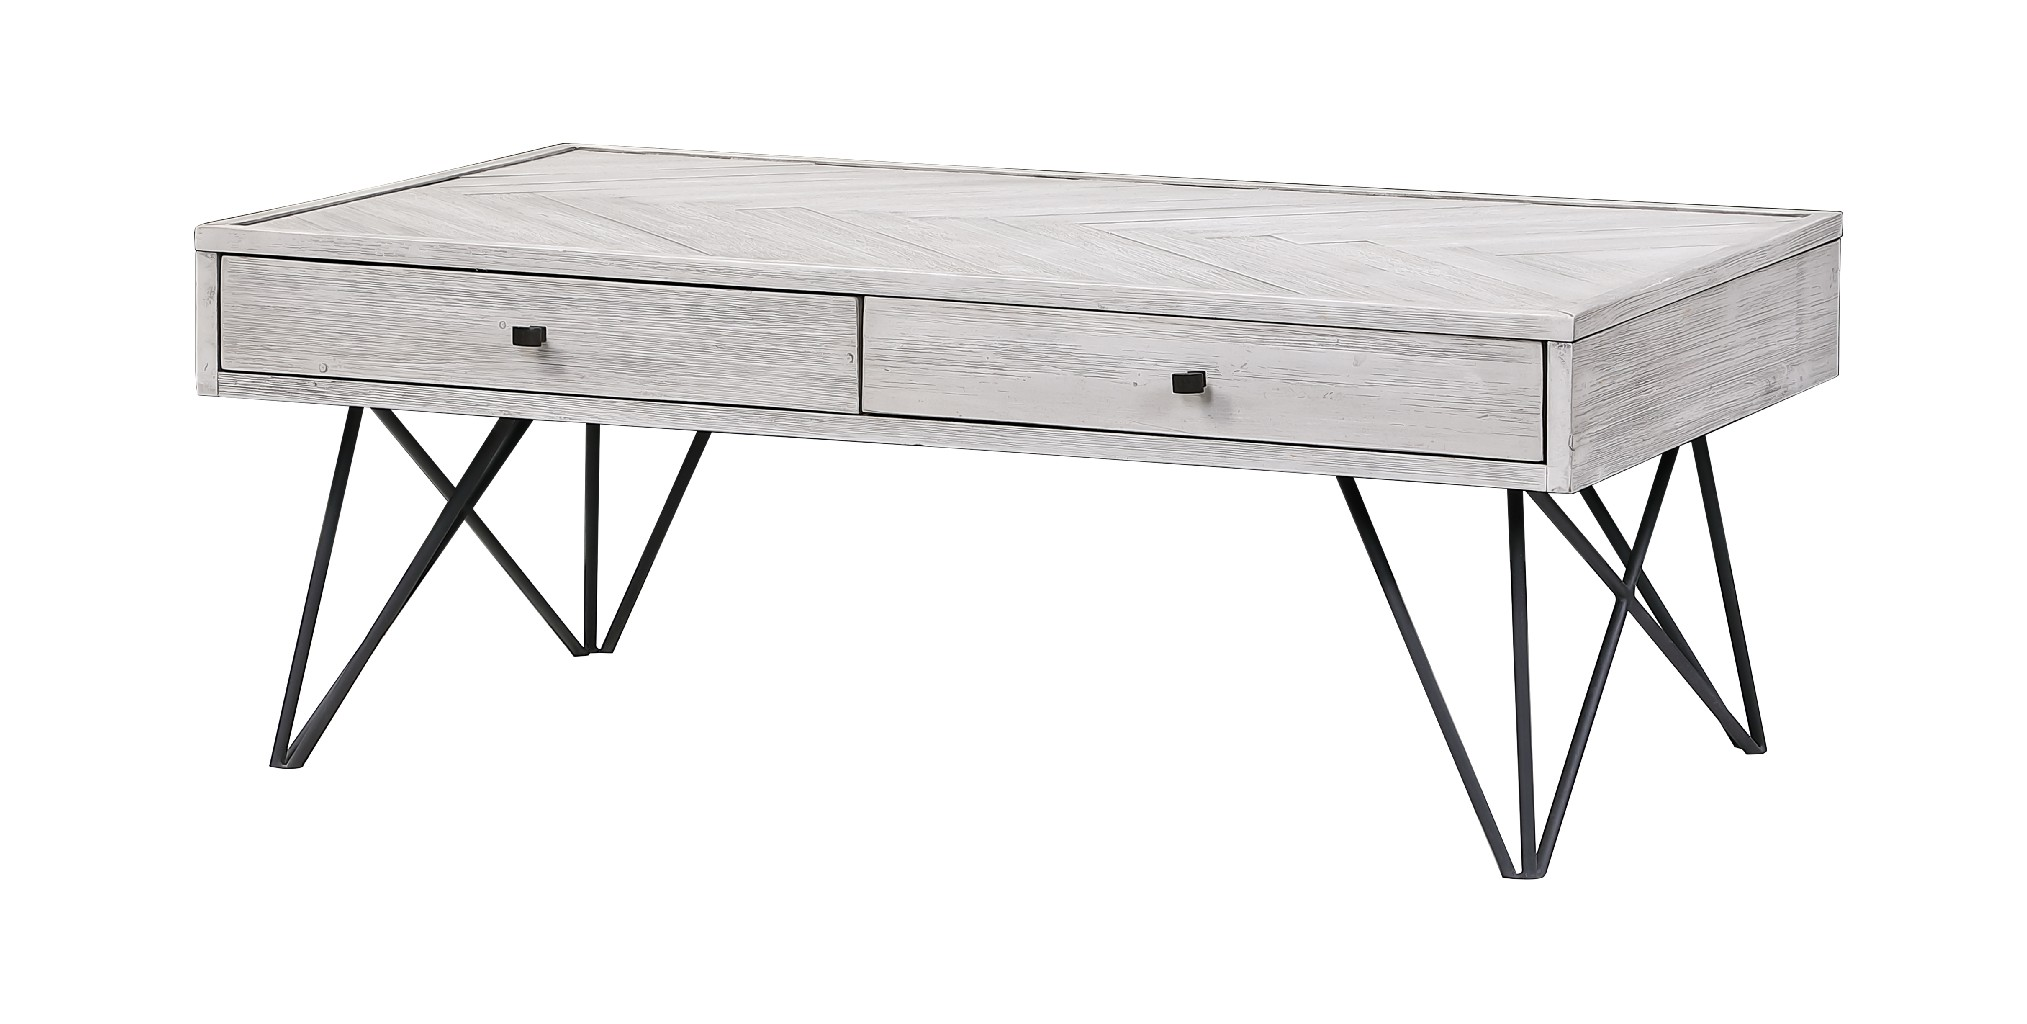 Aspen Court II Two Drawer Cocktail Table - Coast to Coast Imports 48202